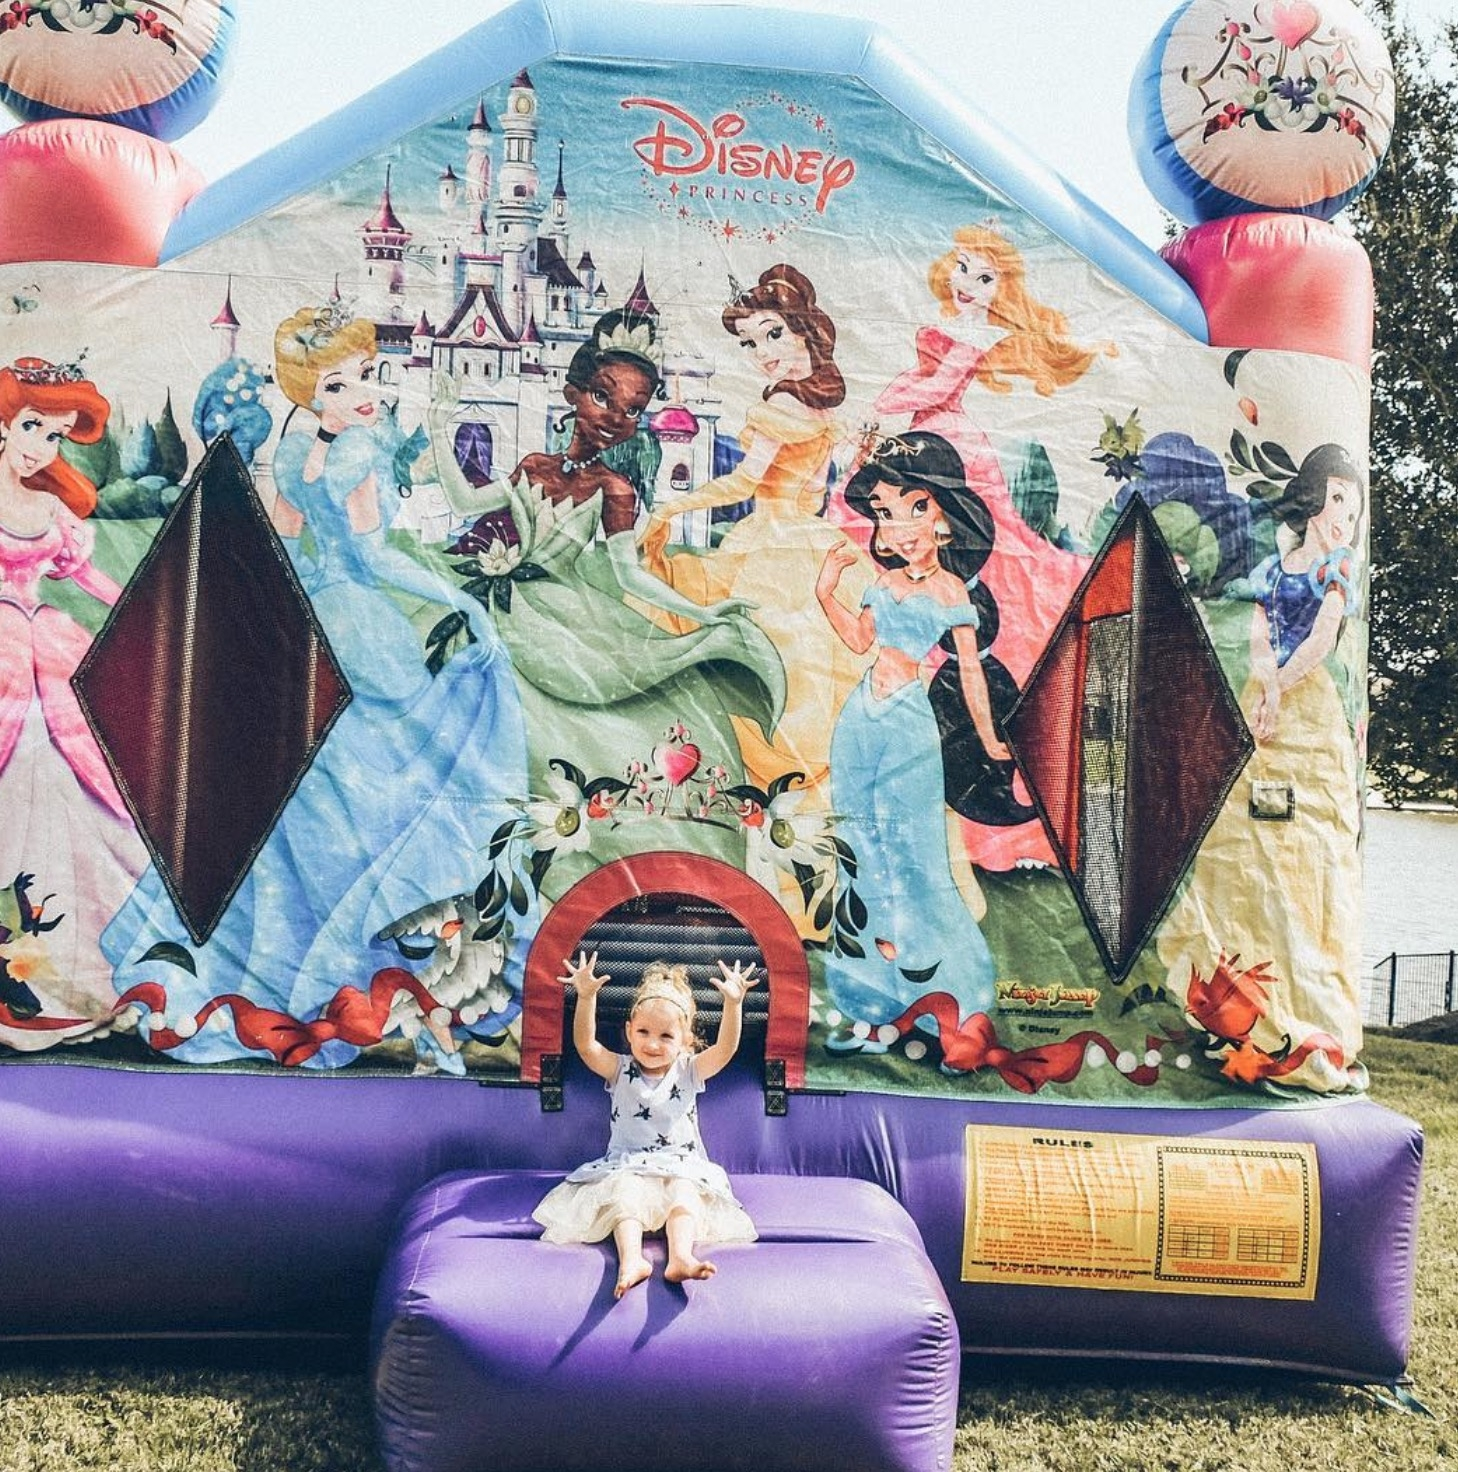 Princess and the Frog Bounce House Houston